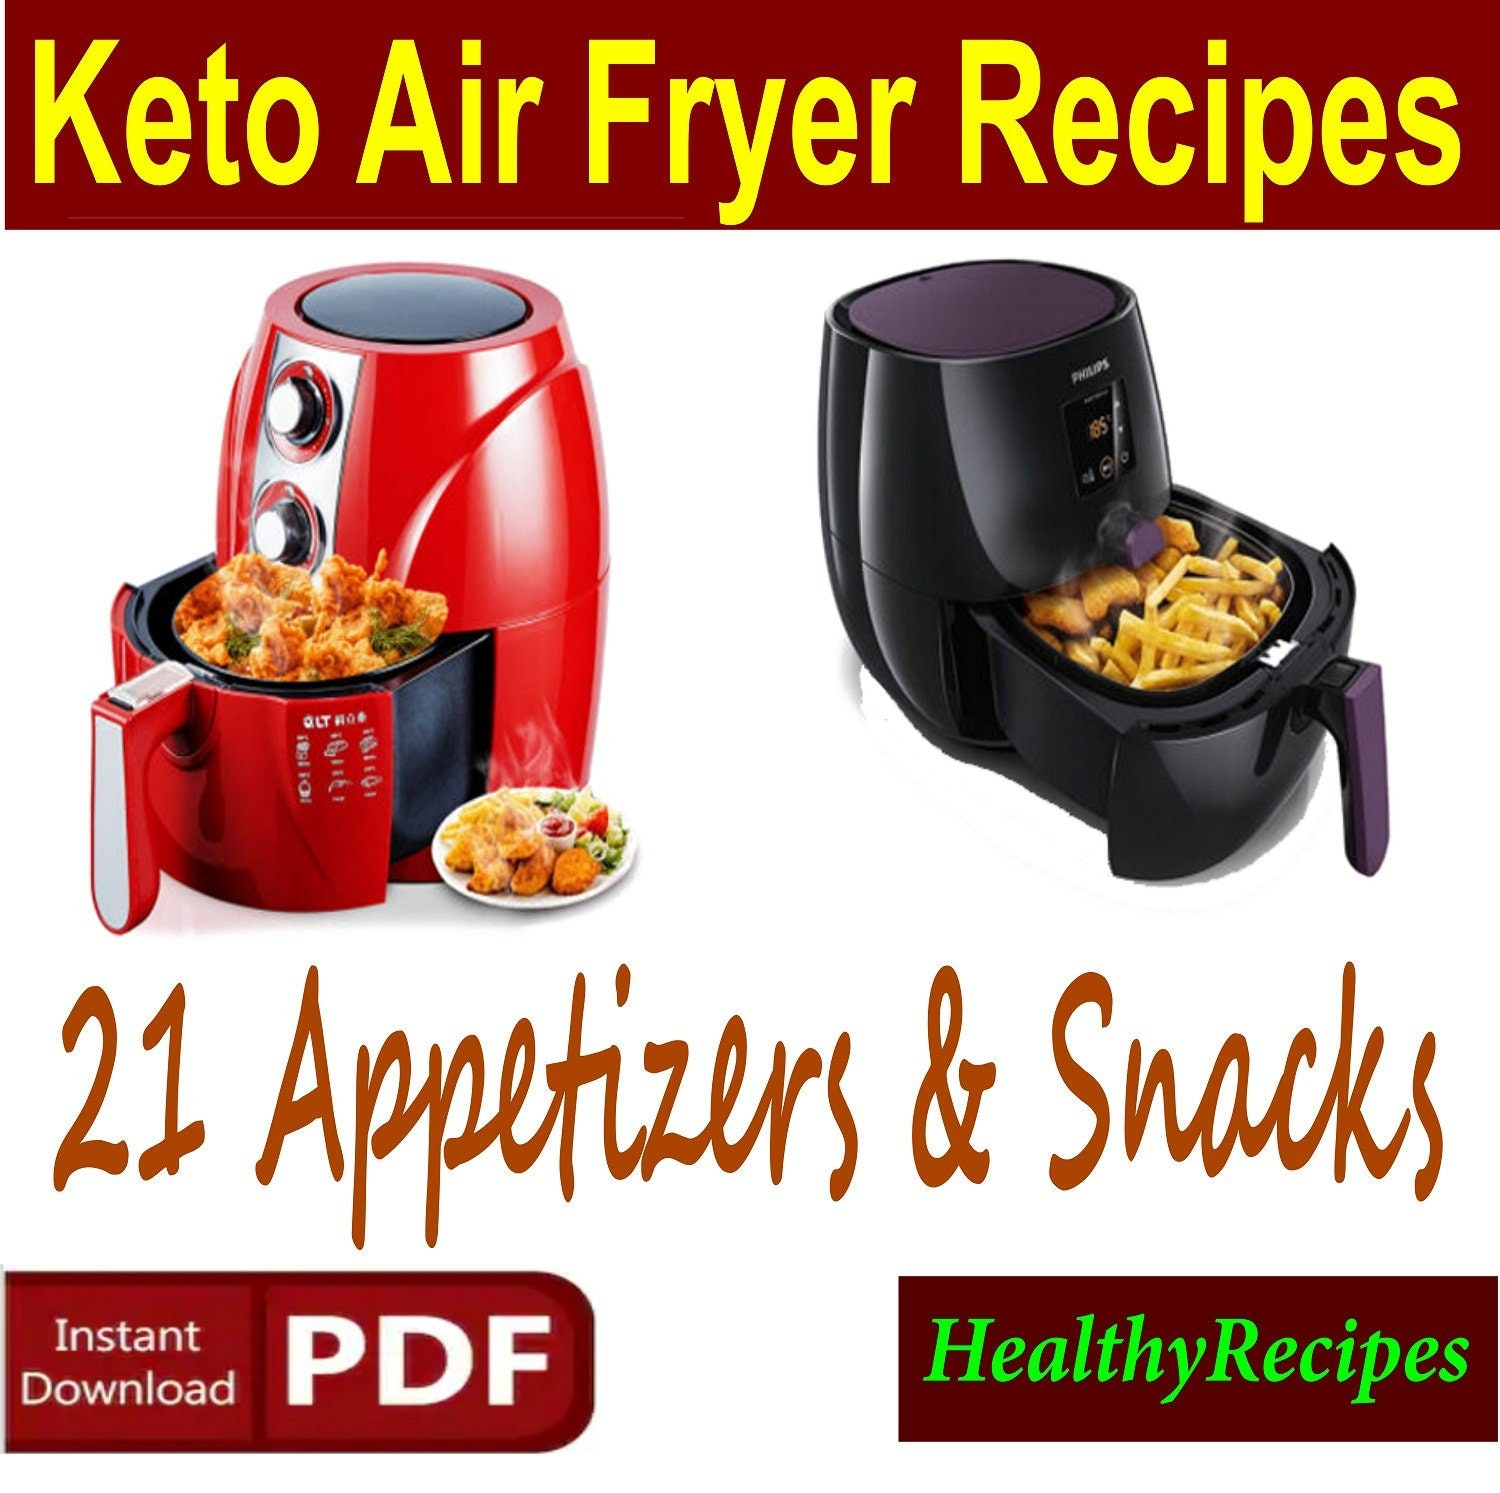 Keto Air Fryer Recipes 21 Keto Snacks Recipes Keto Etsy